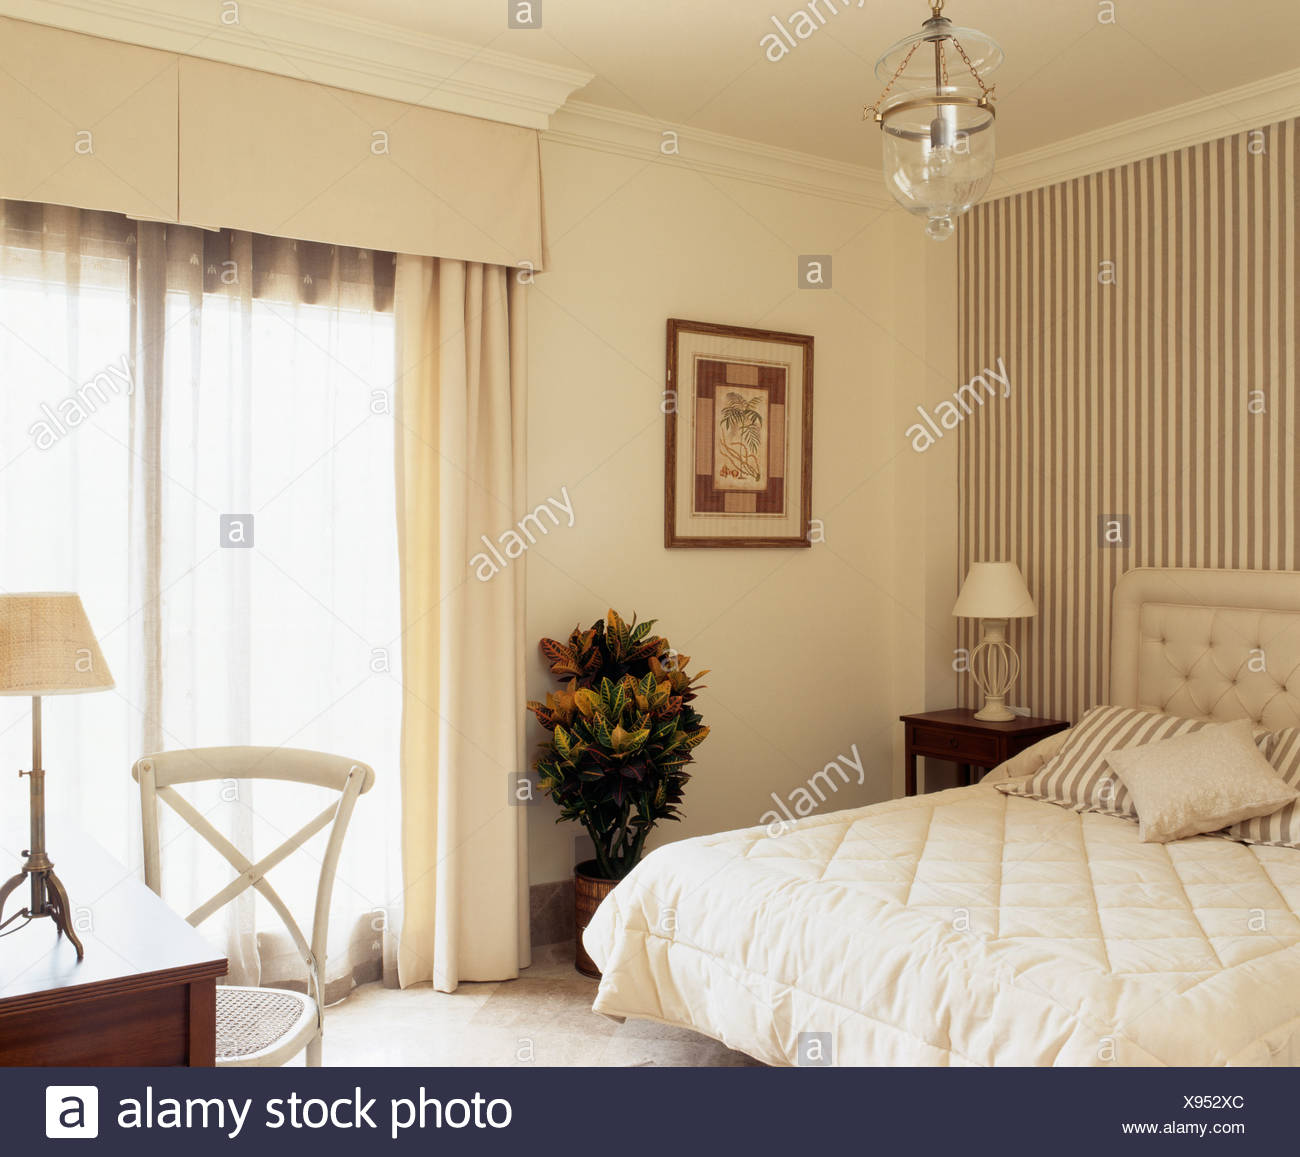 Striped Wallpaper Behind Bed With Cream Quilt In Spanish Bedroom